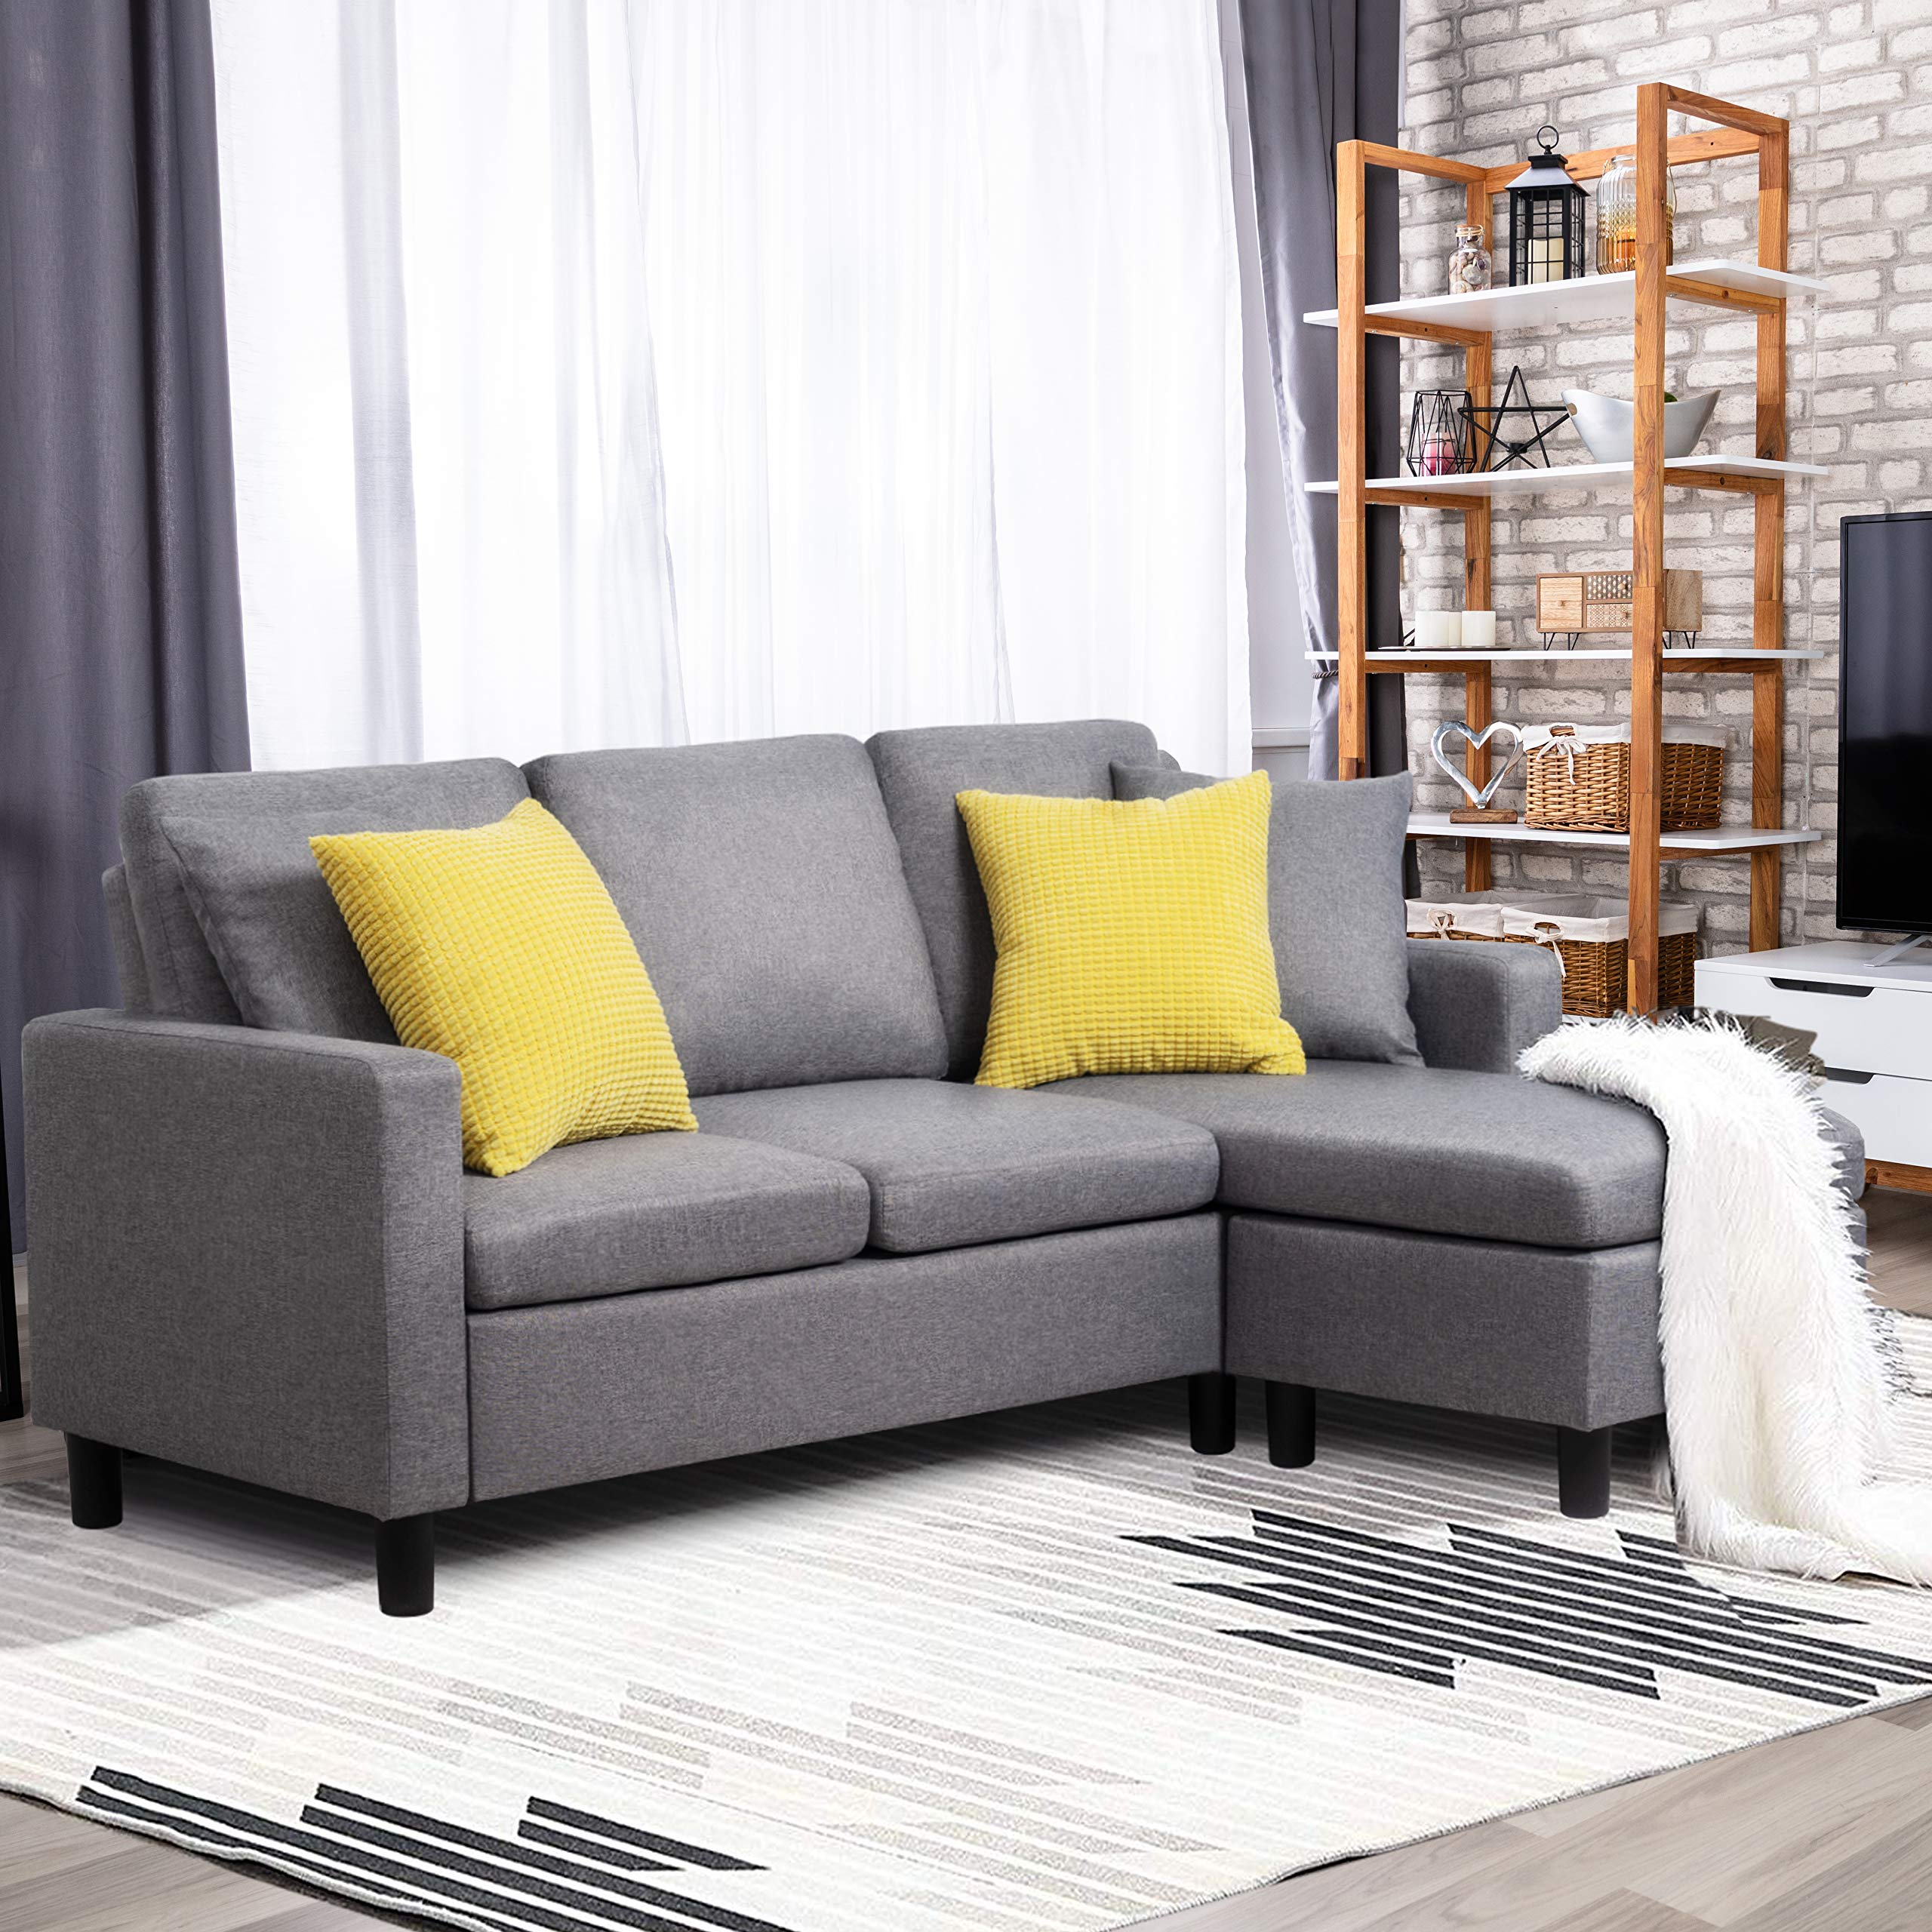 Shintenchi Sectional Sofa Couch Convertible Chaise Lounge, Modern Sofa Set for Living Room, L-Shaped Couch with Linen Fabric for Small Space, Grey by Shintenchi